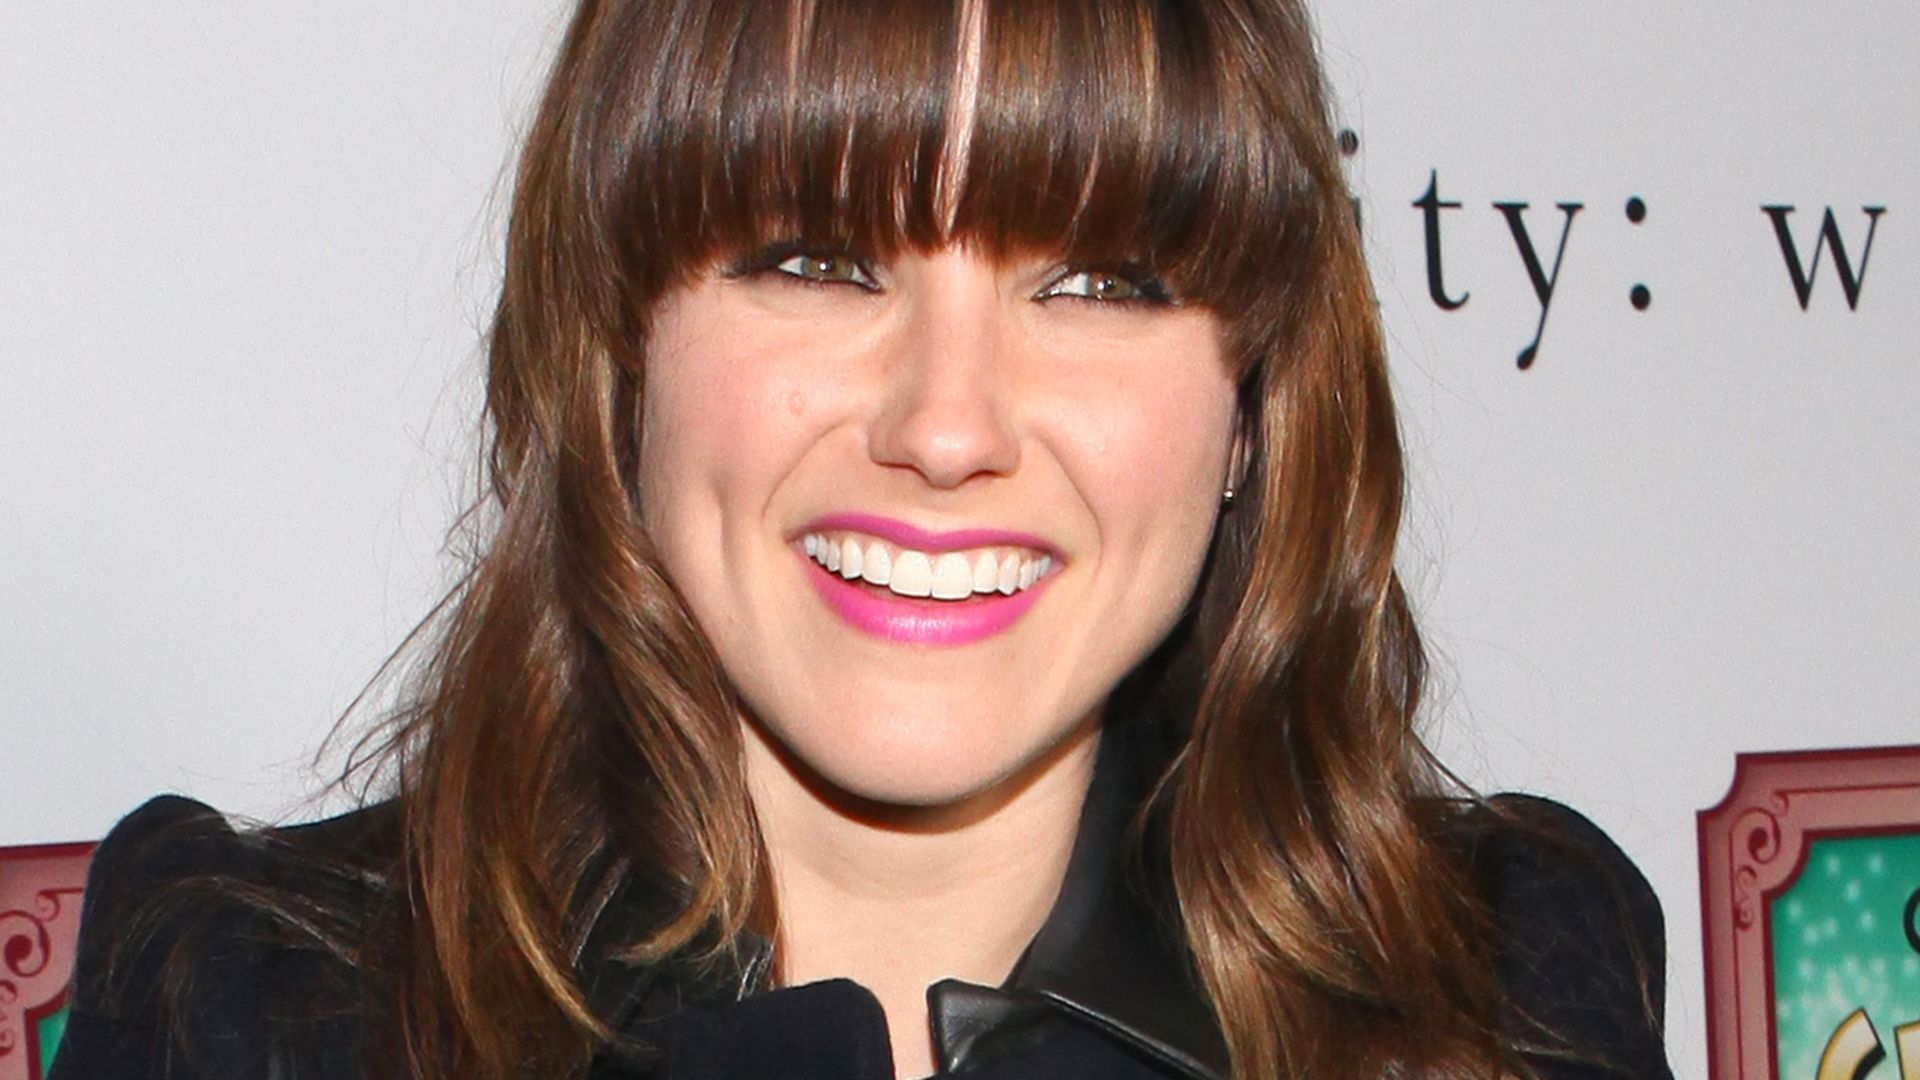 neuer look sophia bush tr gt jetzt pony. Black Bedroom Furniture Sets. Home Design Ideas